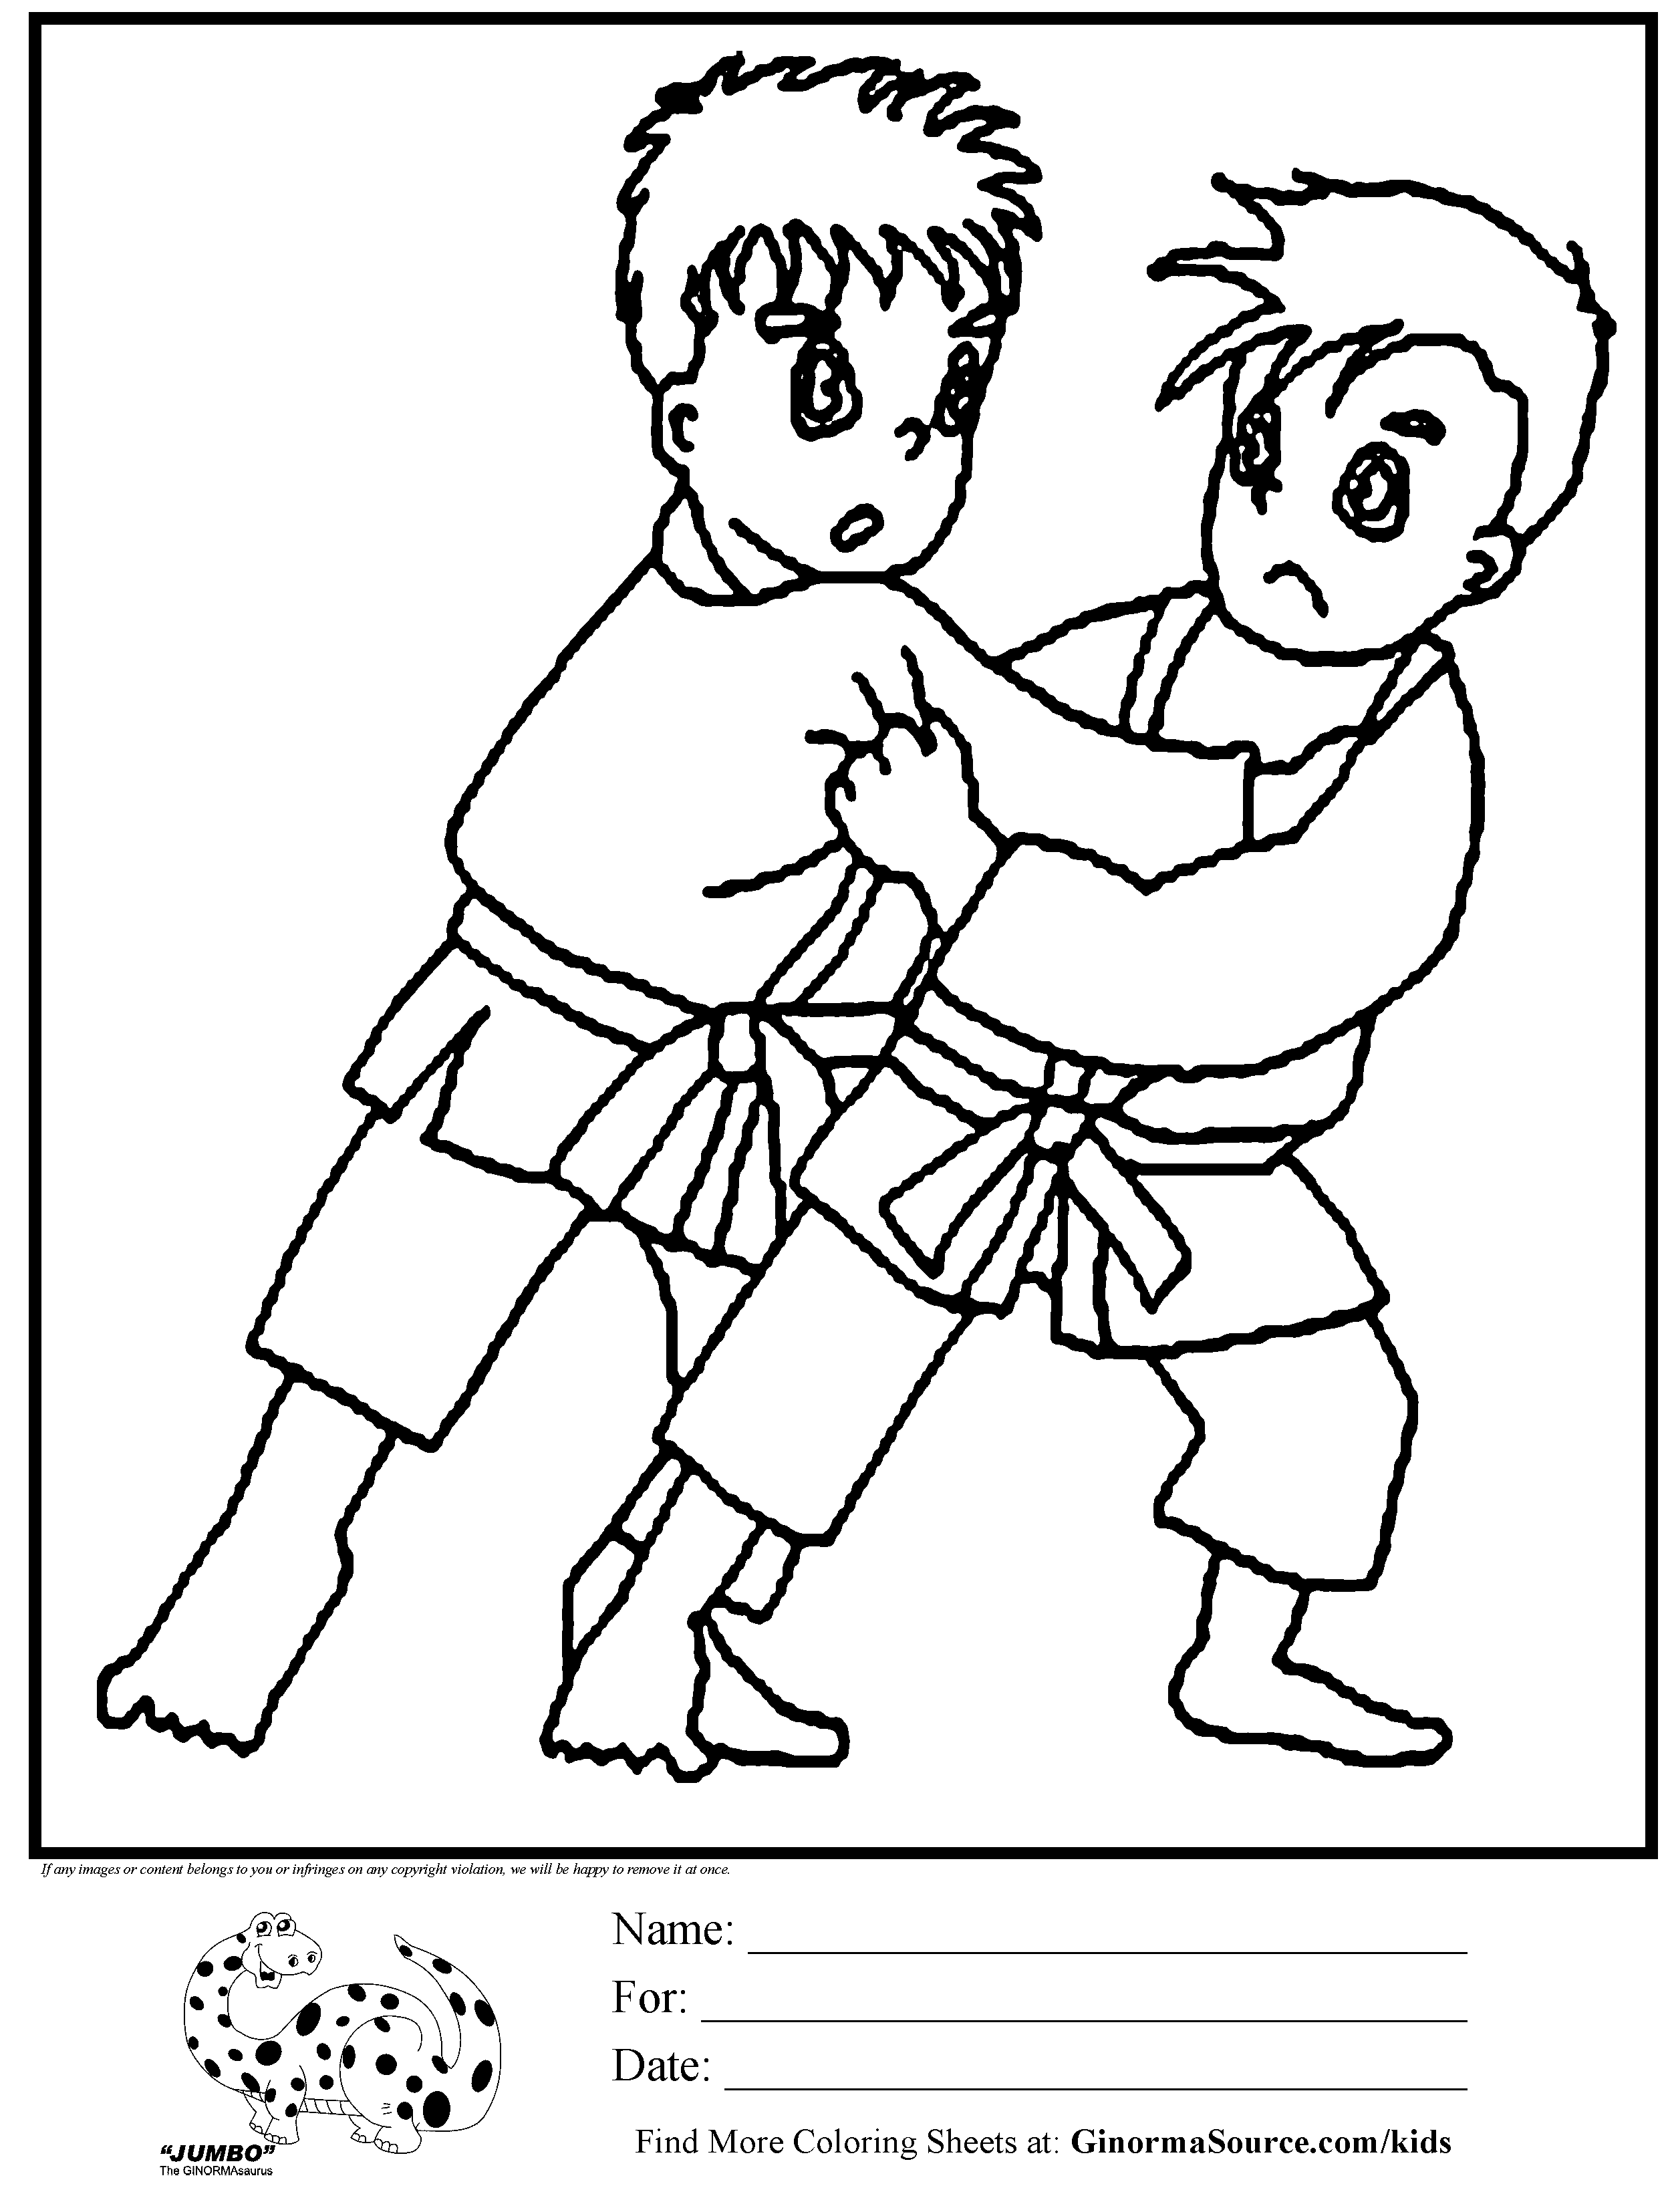 karate coloring pages for kids worksheets pinterest coloring